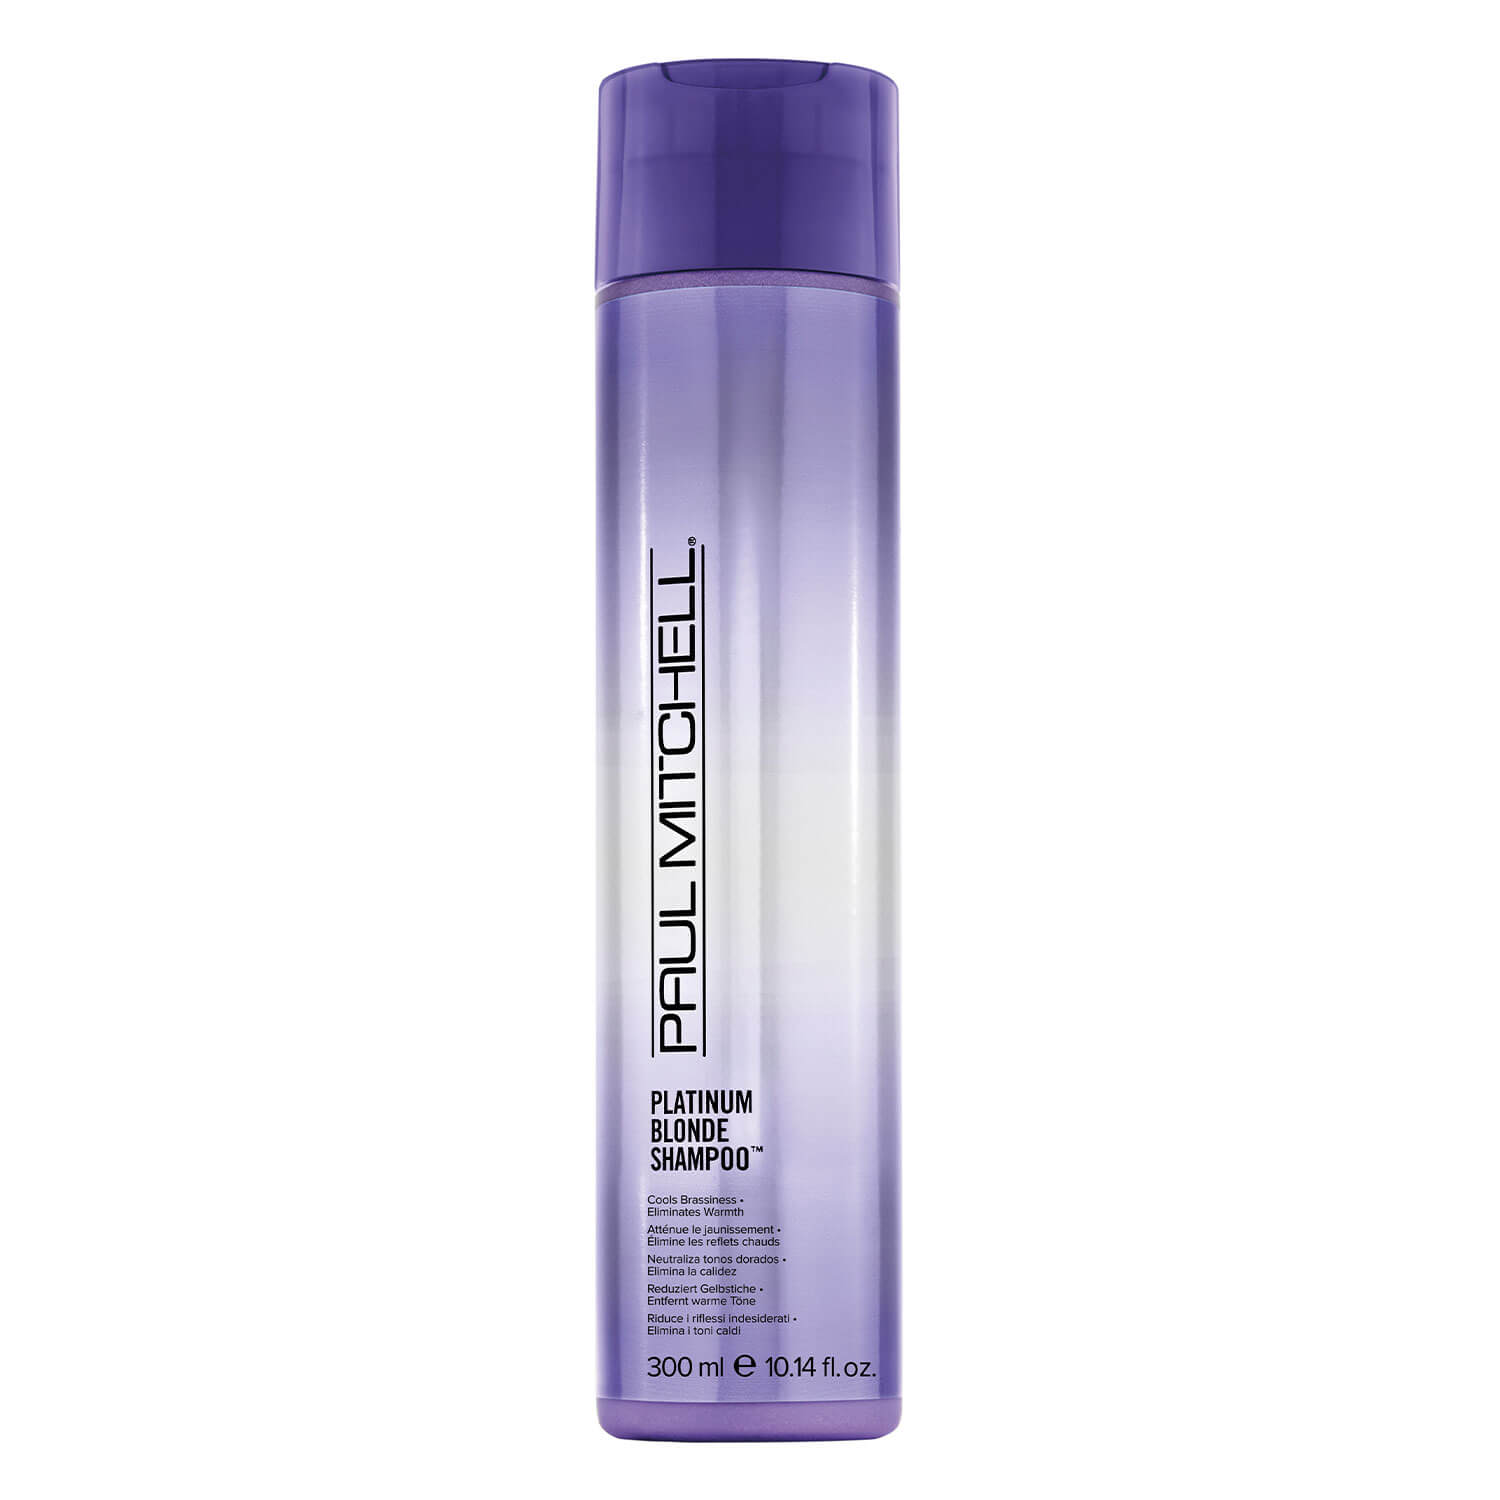 Blonde - Platinum Blonde Shampoo - 300ml